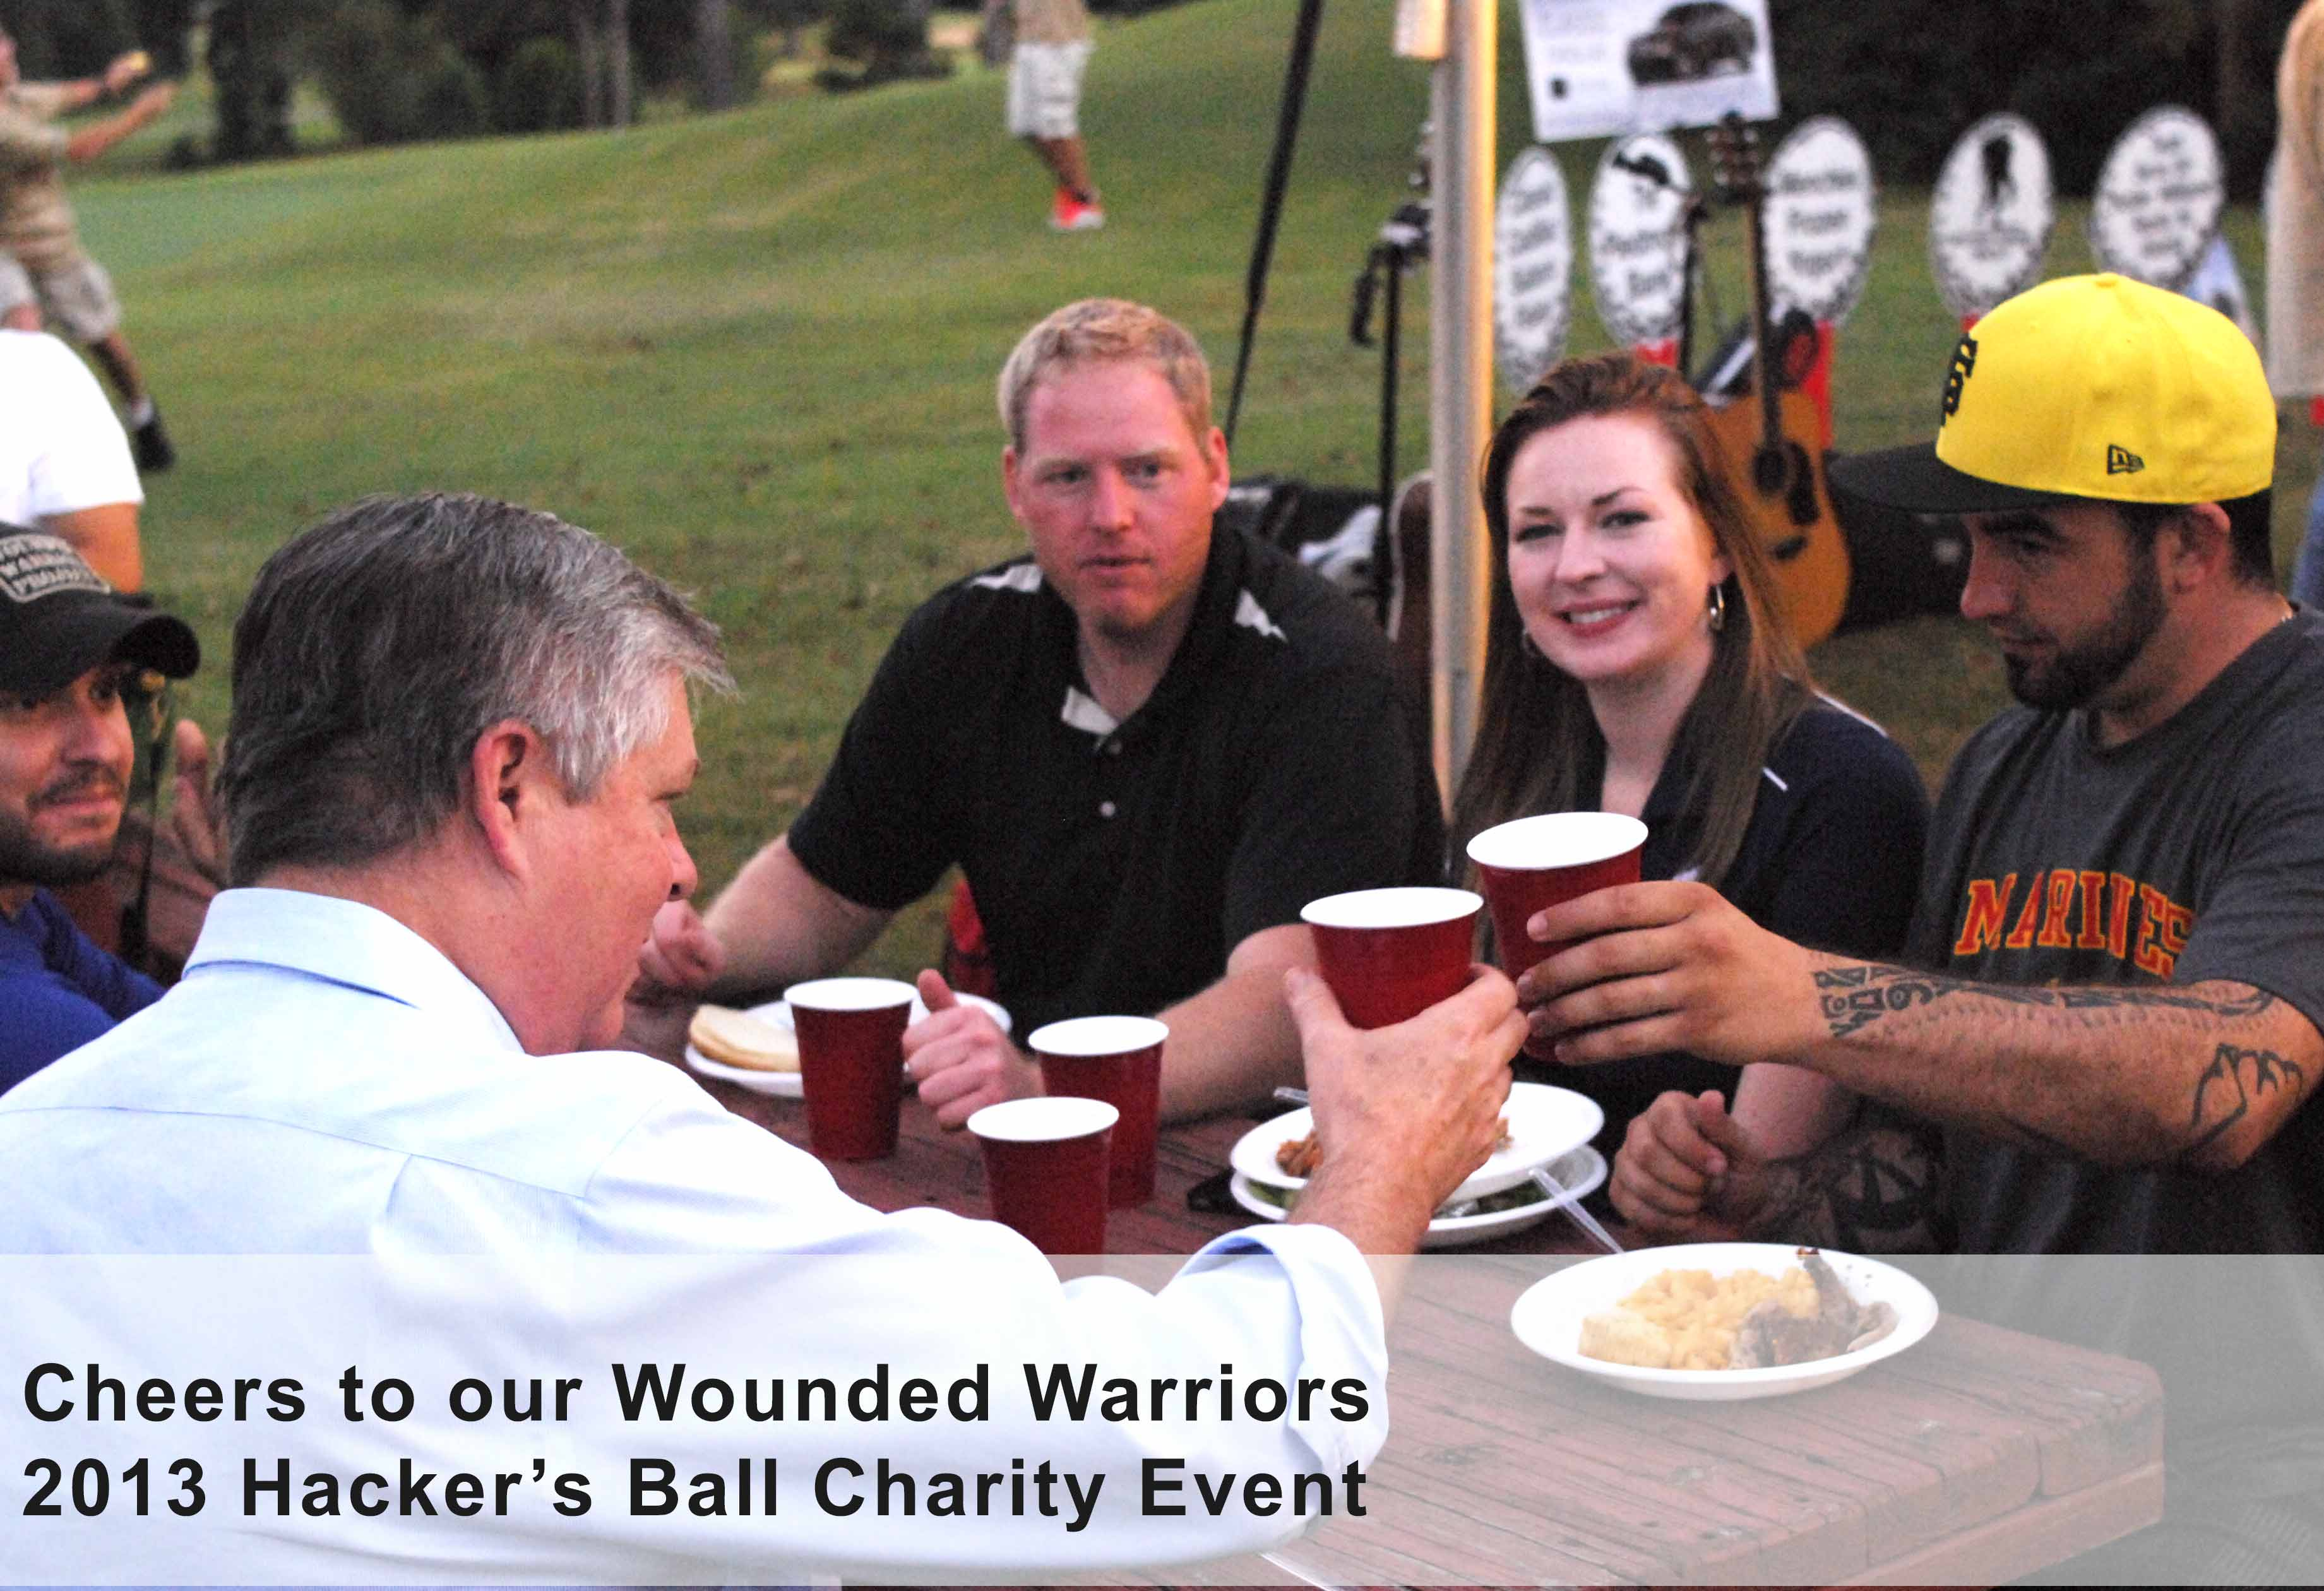 Wounded Warriors Cheer